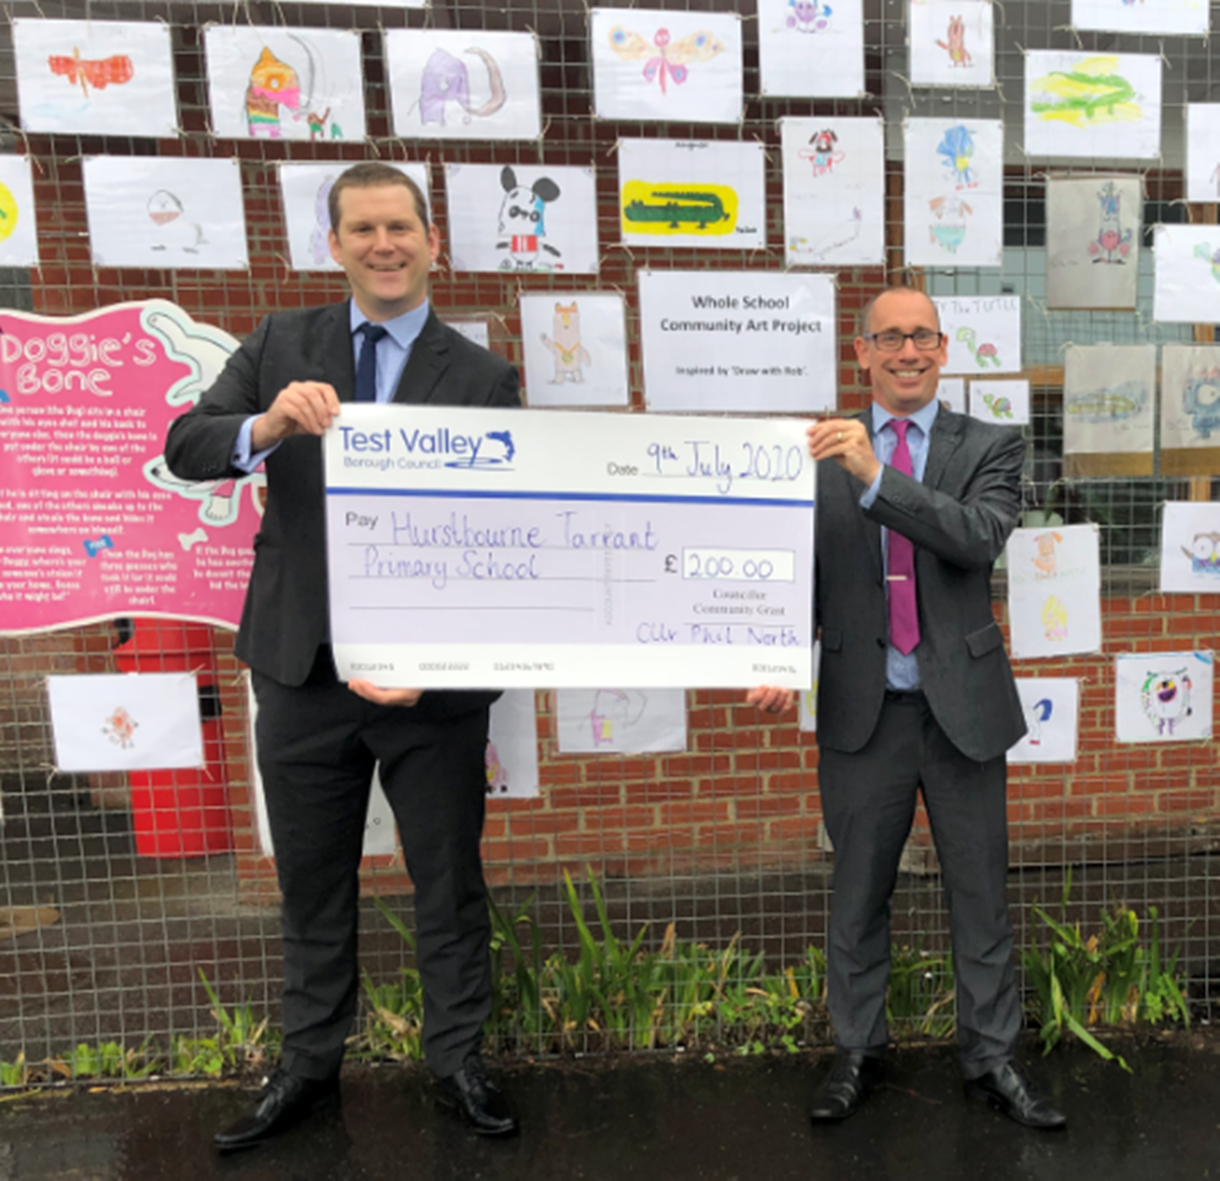 Cllr Phil North presenting the cheque